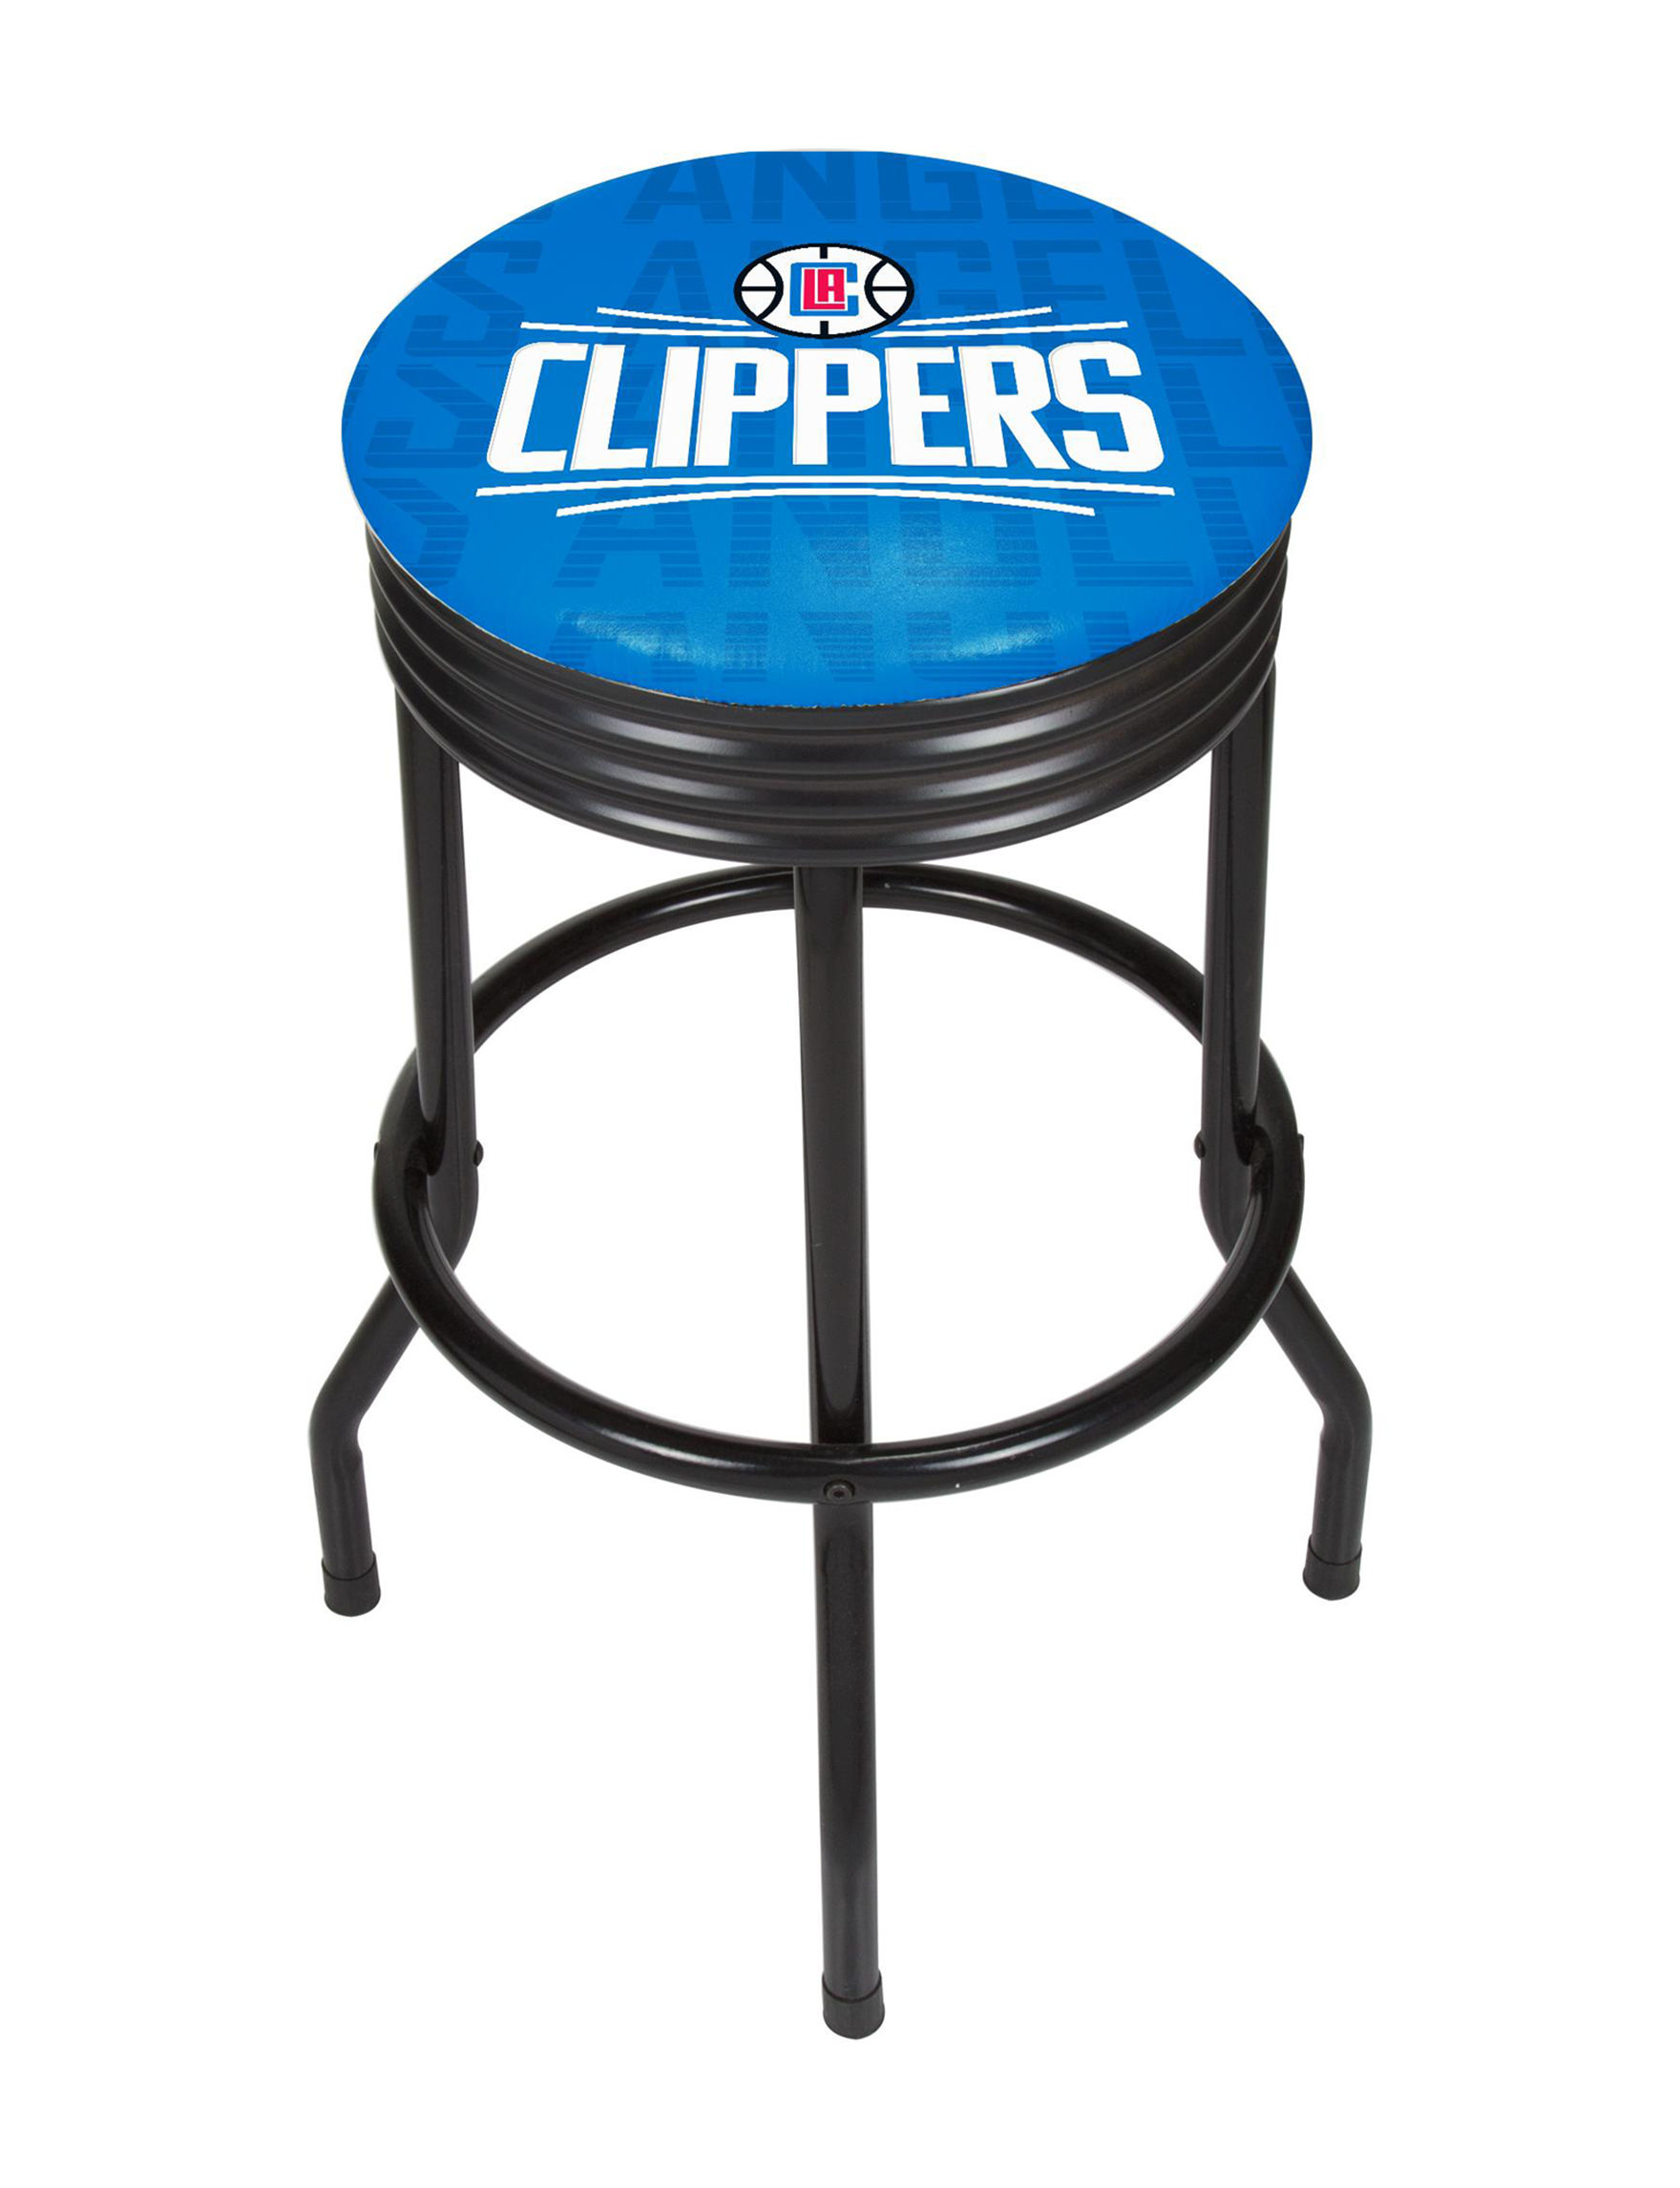 NBA Red / White / Blue Bar & Kitchen Stools Kitchen & Dining Furniture